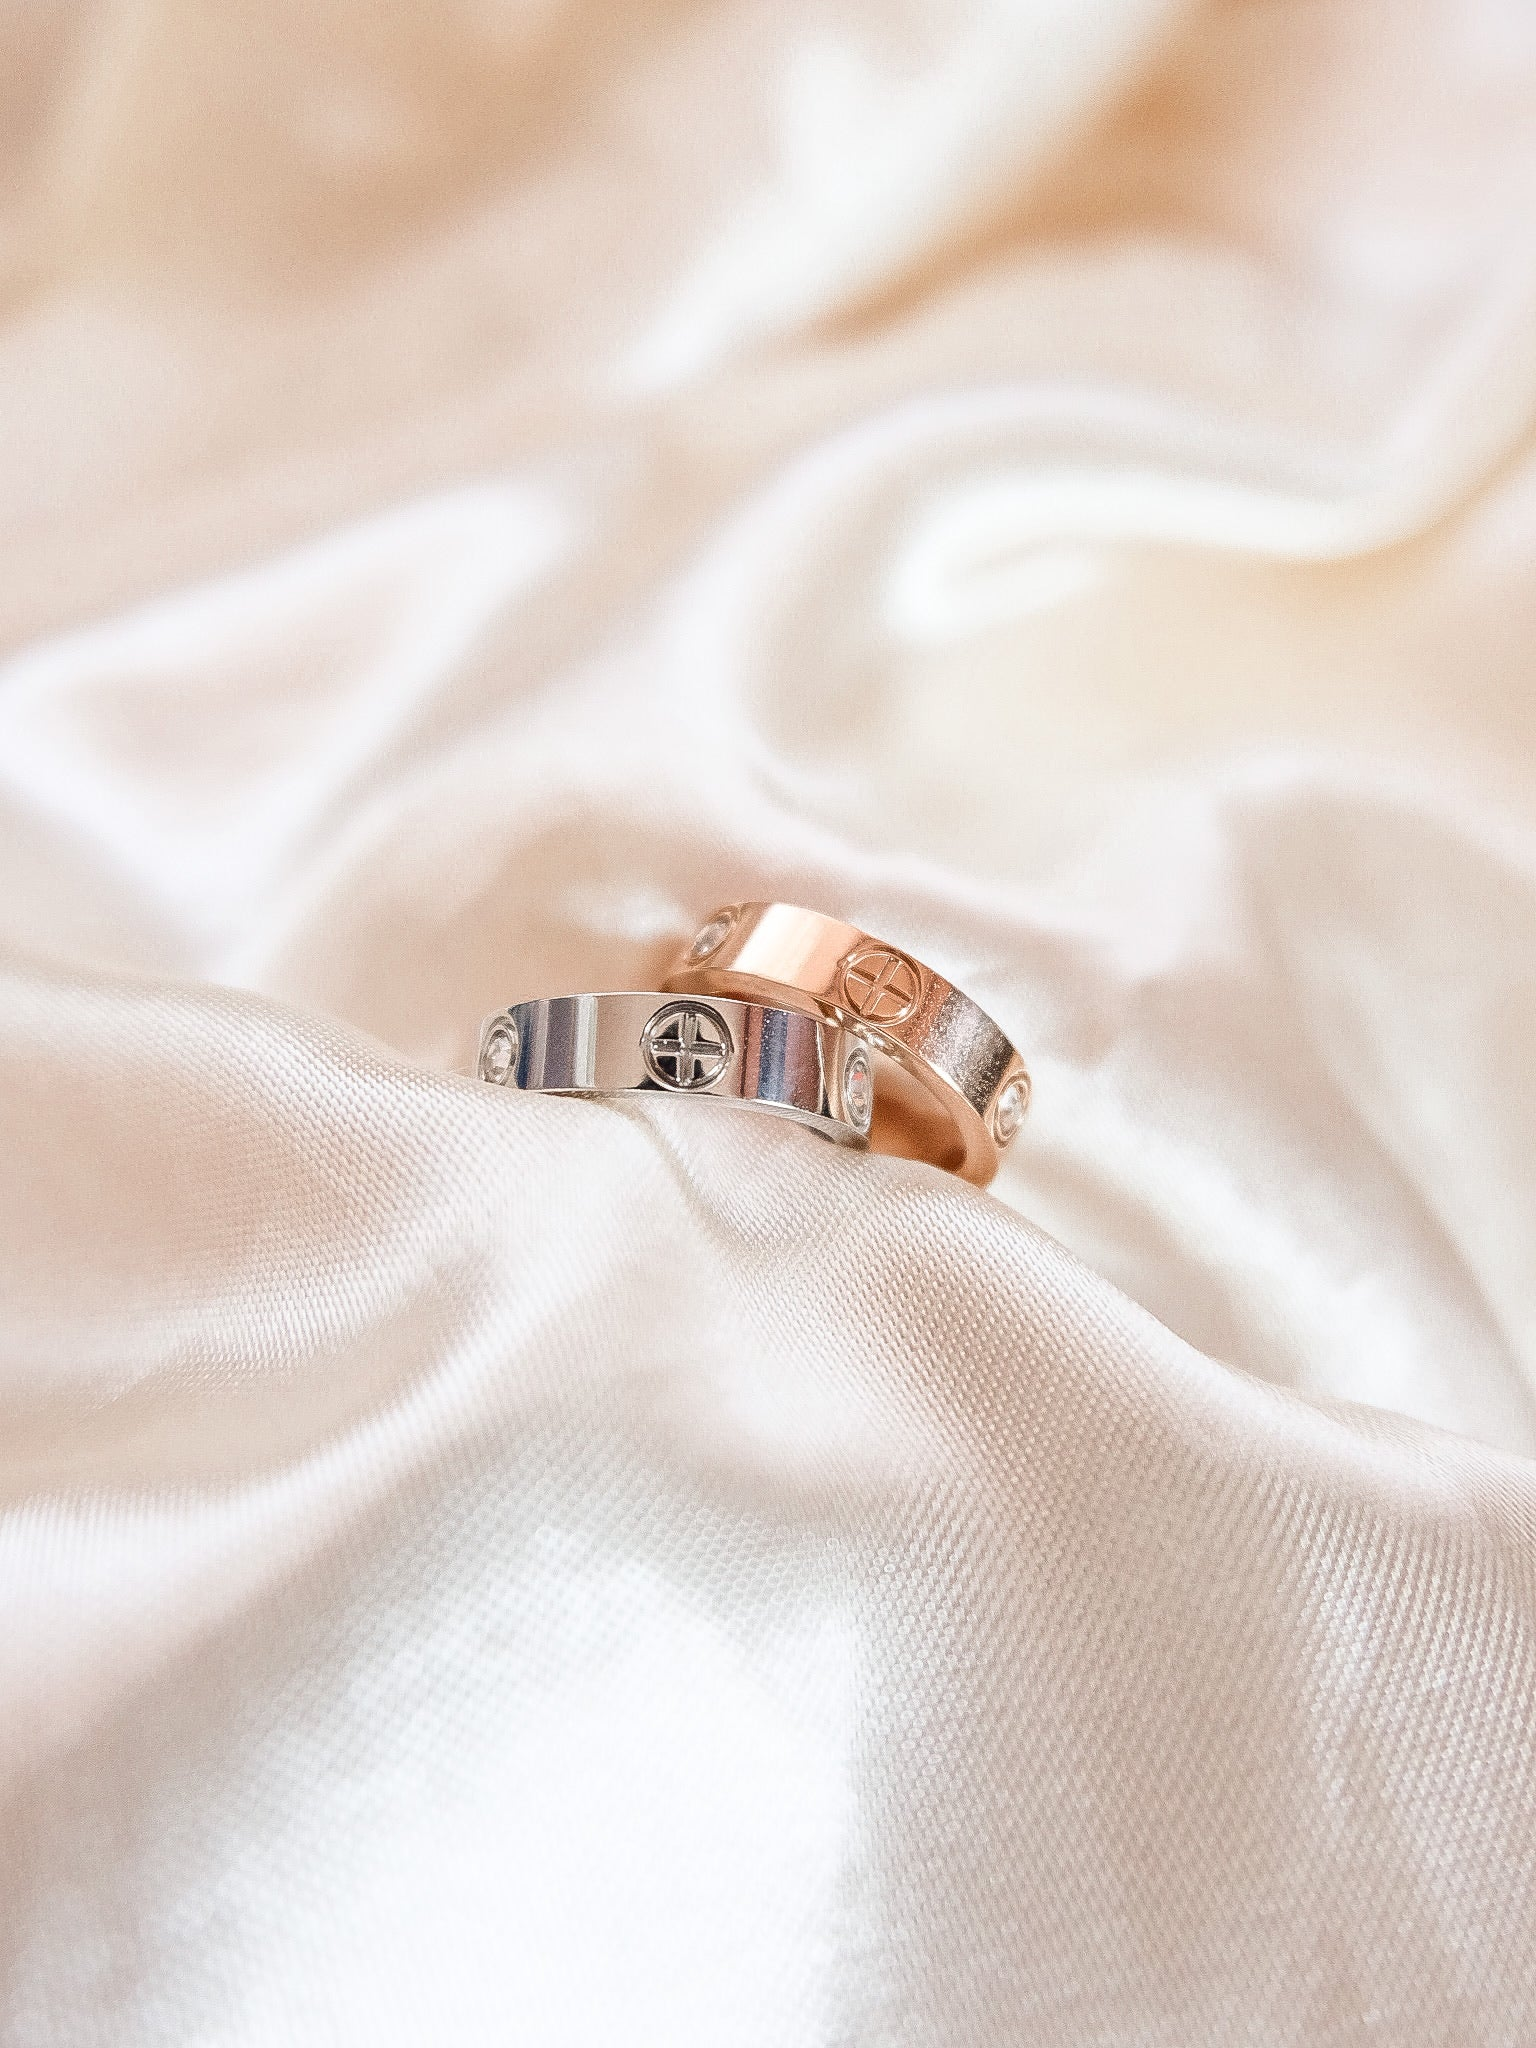 Love Couple Ring